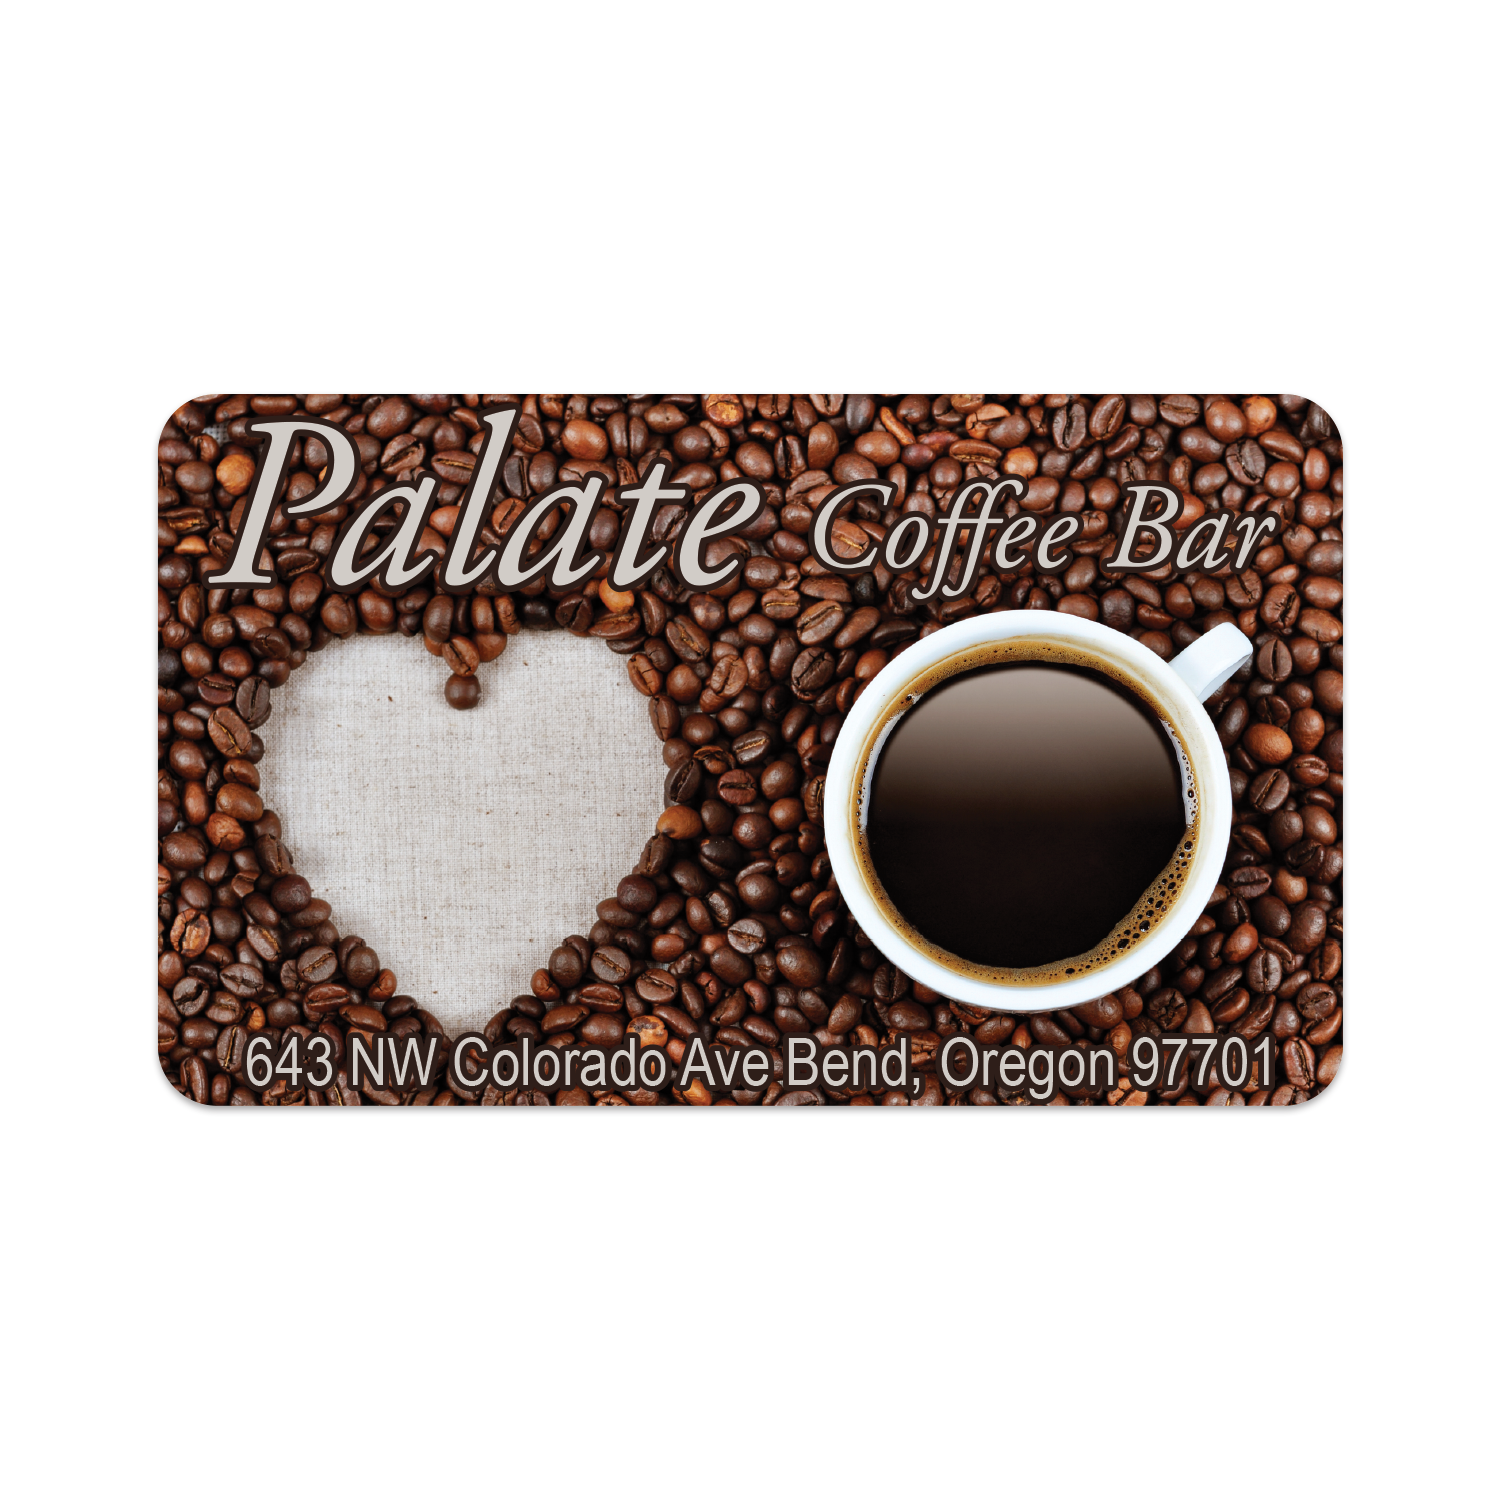 https://www.sswprinting.com/images/products_gallery_images/190402_Palate-Coffee-Bar_hi-res.png